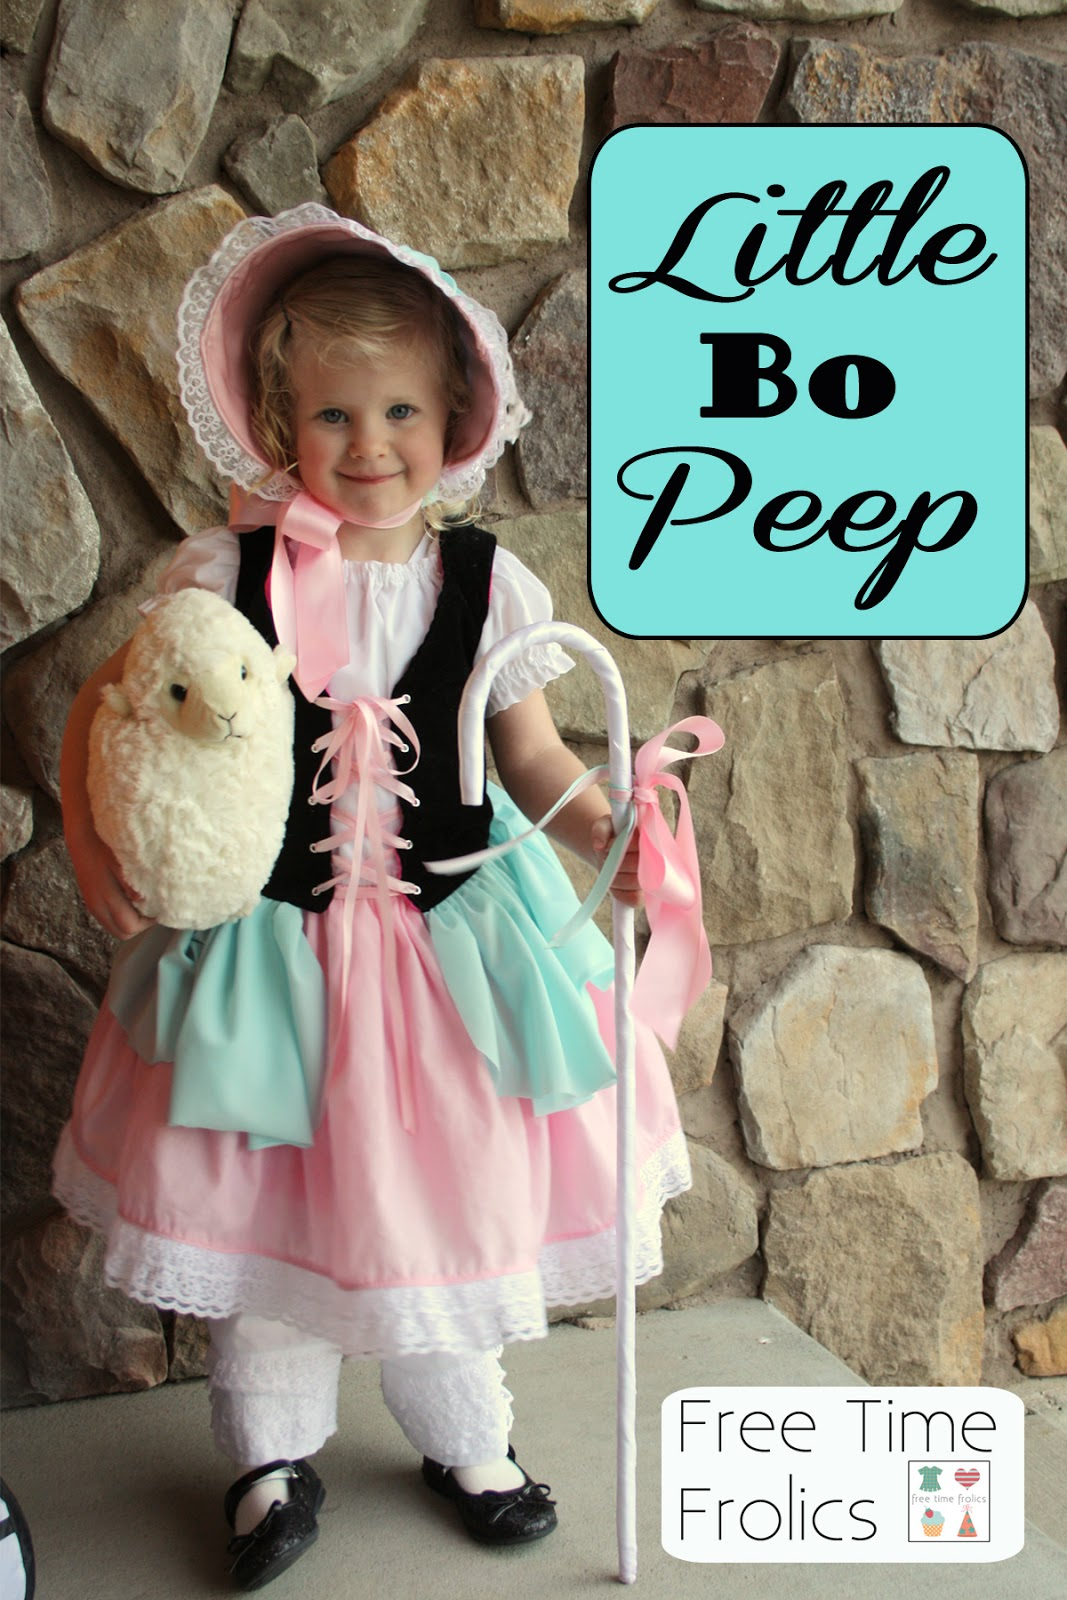 little bo peep Little bo peep has lost her sheep and doesn't know where to find them leave them alone and they'll come home bringing their tails behind them.